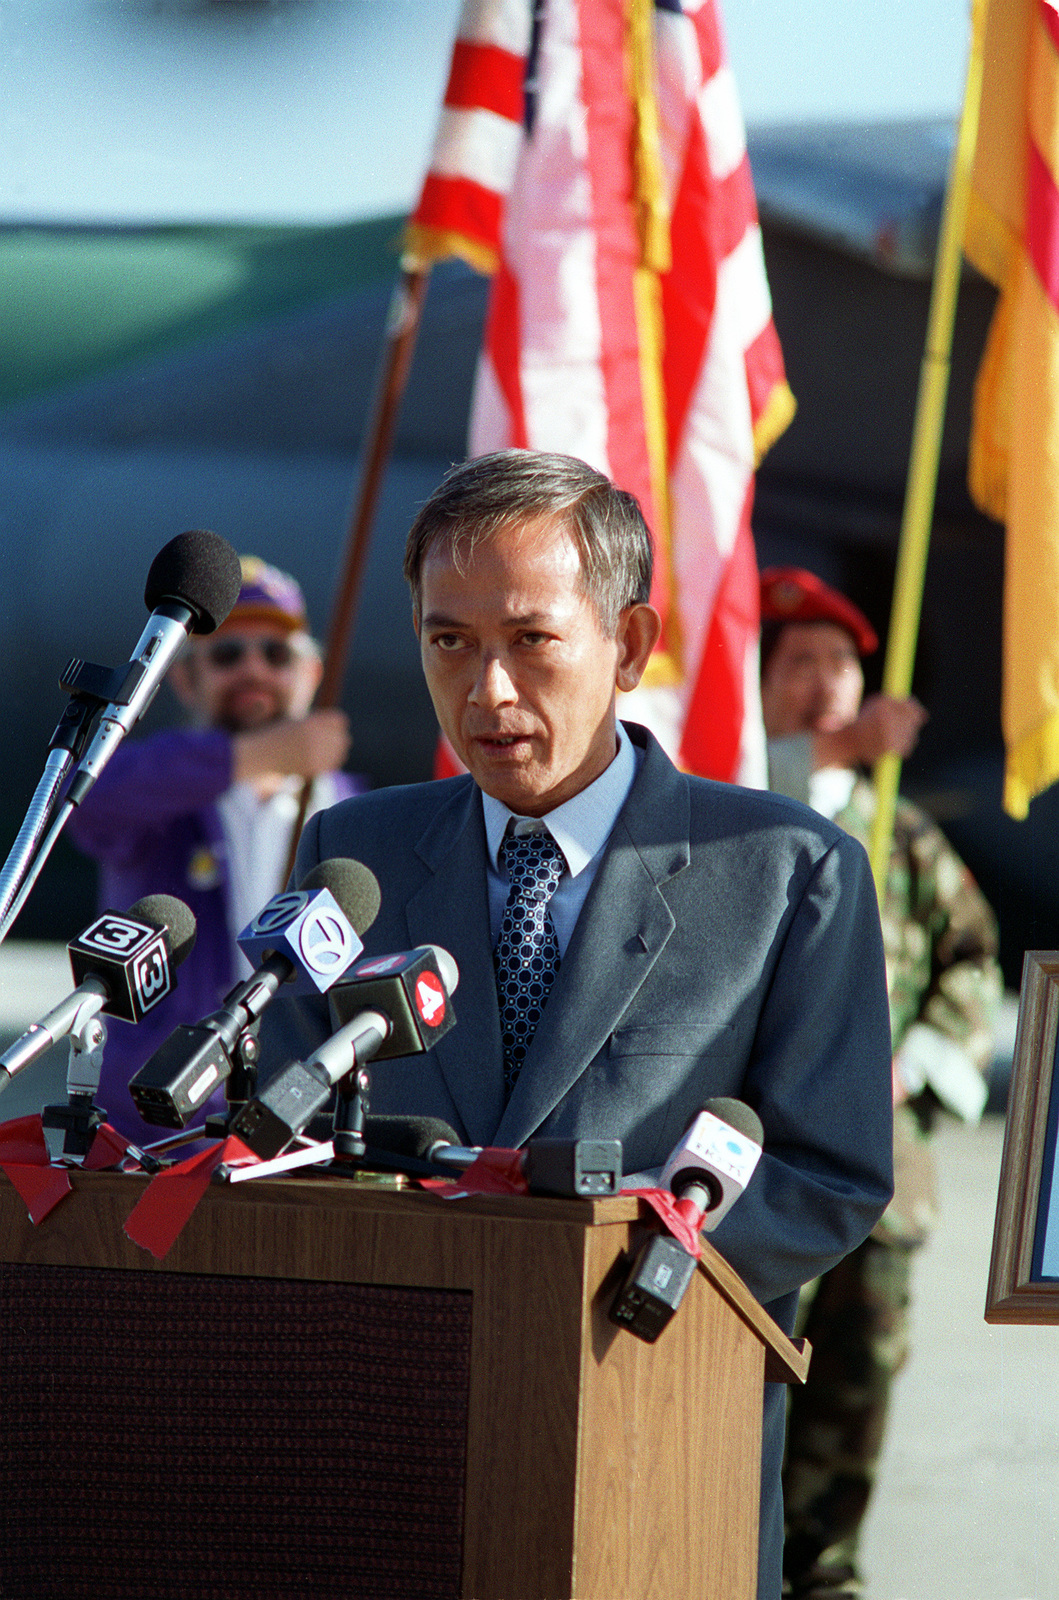 Former South Vietnamese Air Force helicopter pilot stands at the podium on the flight line as he delivers a speech before two hundred well wishers. MAJ Nquyen Quy An risked his life to save four American soldiers in a sniper-filled jungle in Laos, and for his heroism that day. An received the Distinguished Flying Cross